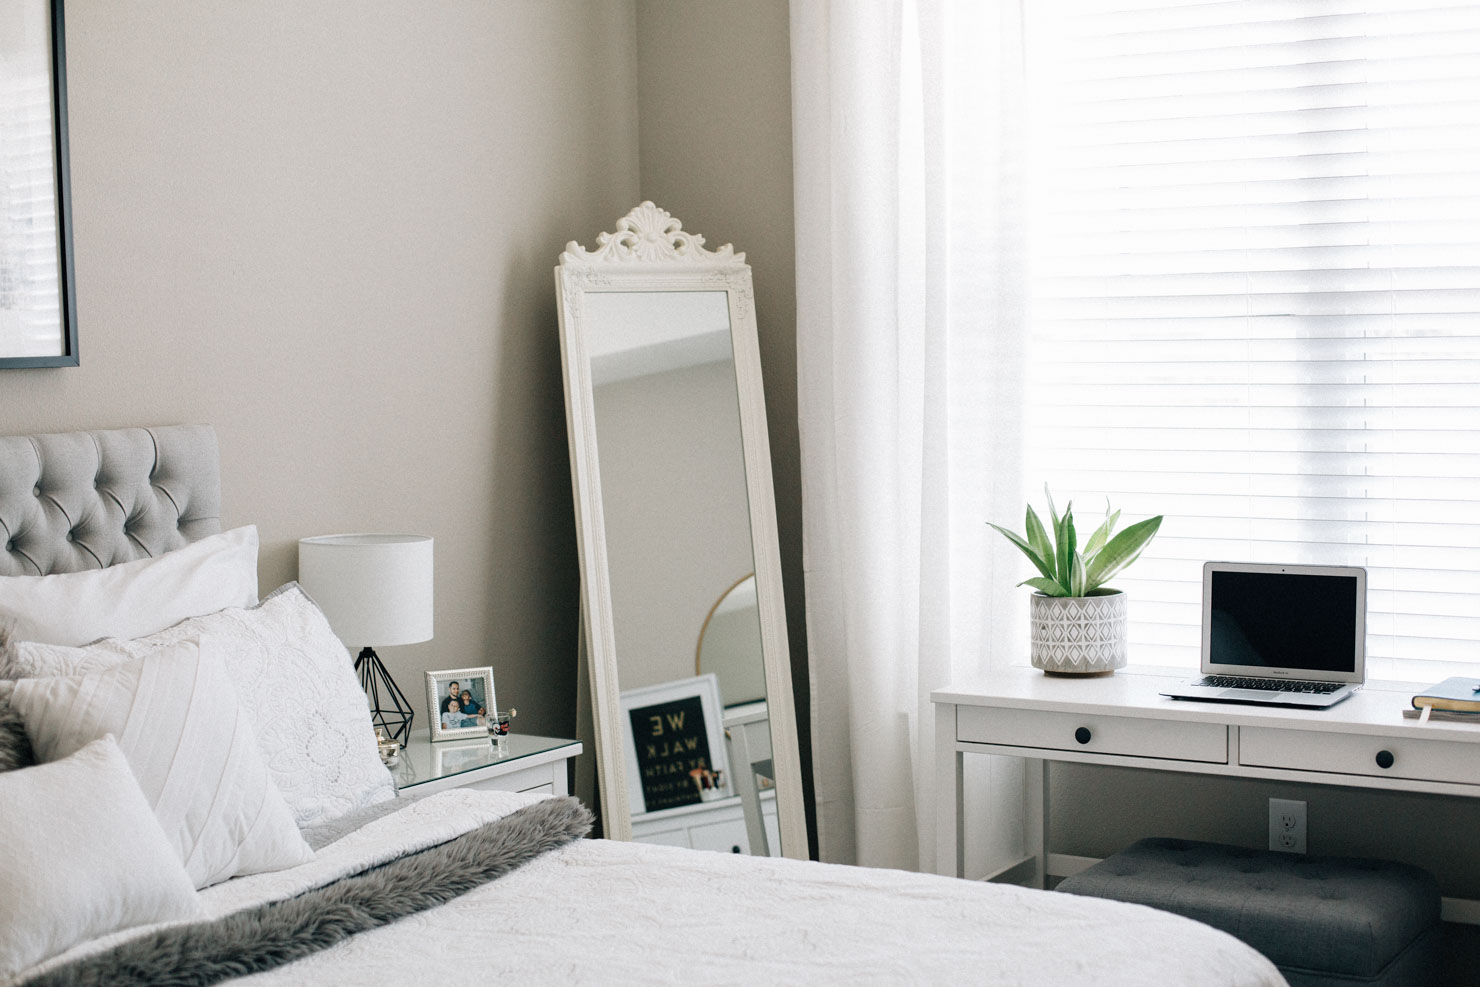 Lifestyle blogger Lilly Beltran of Daily Craving master bedroom reveal with grey tufted headboard and white bedding details